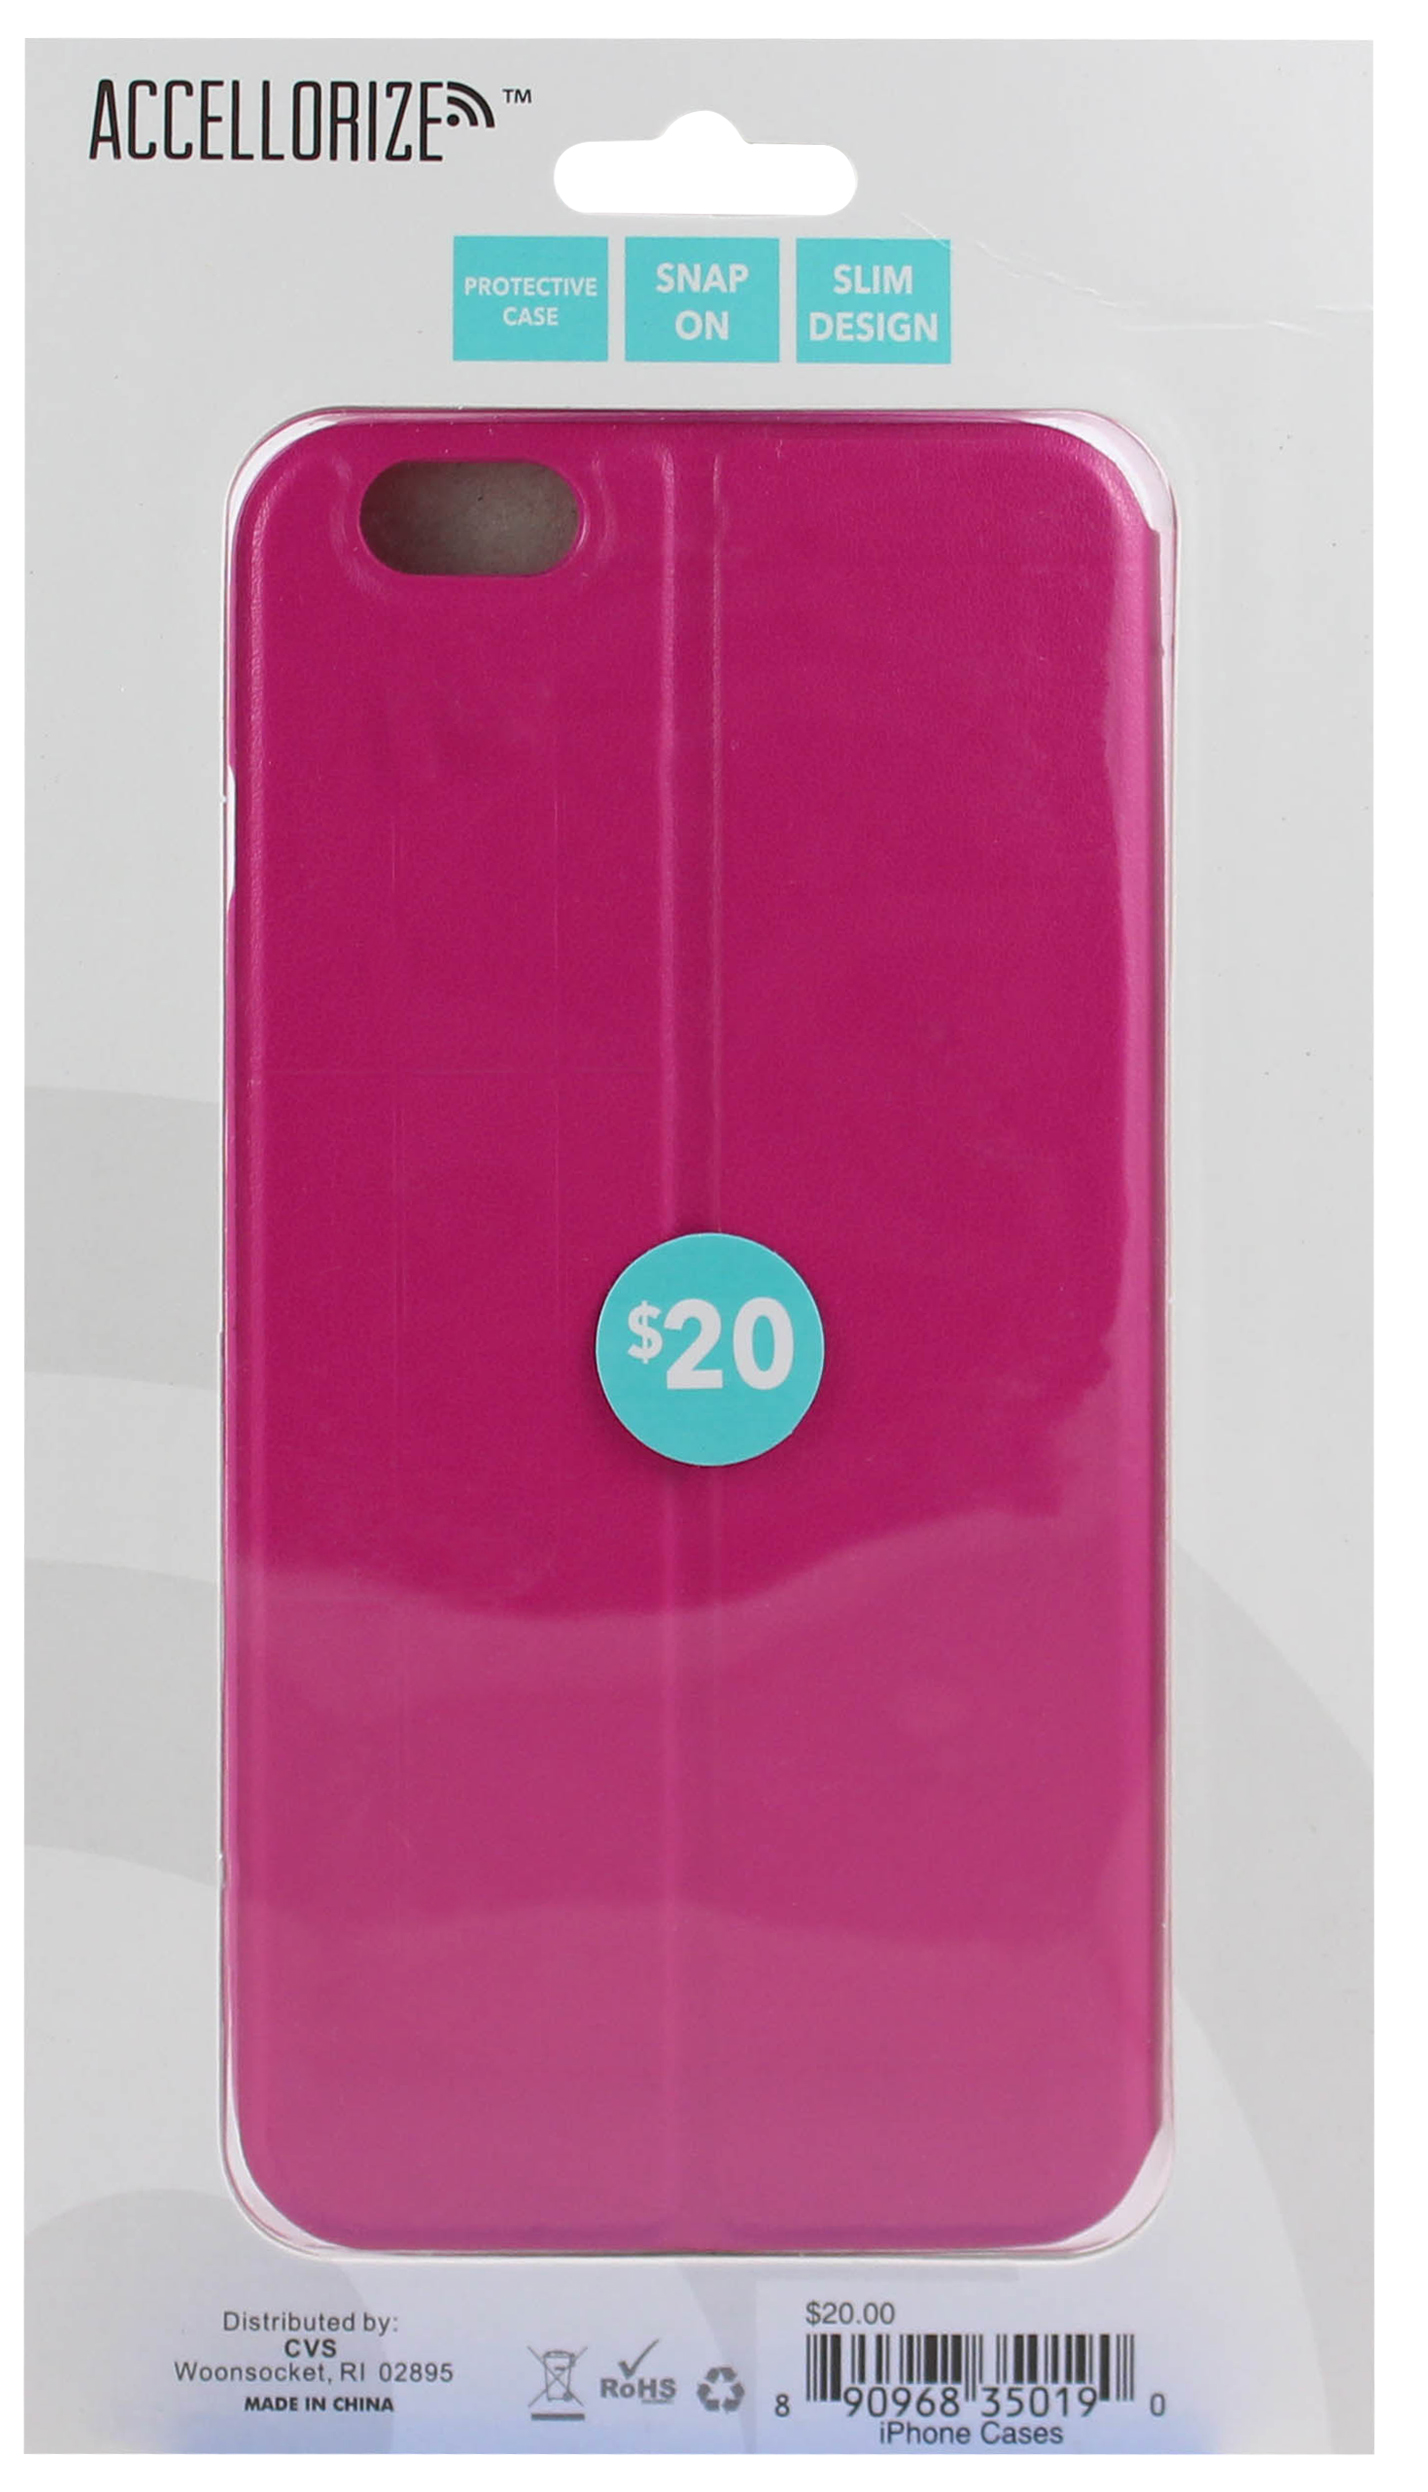 ACCELLORIZE 35019 PINK PROTECTIVE CASE FOR IPHONE 6 MADE OF